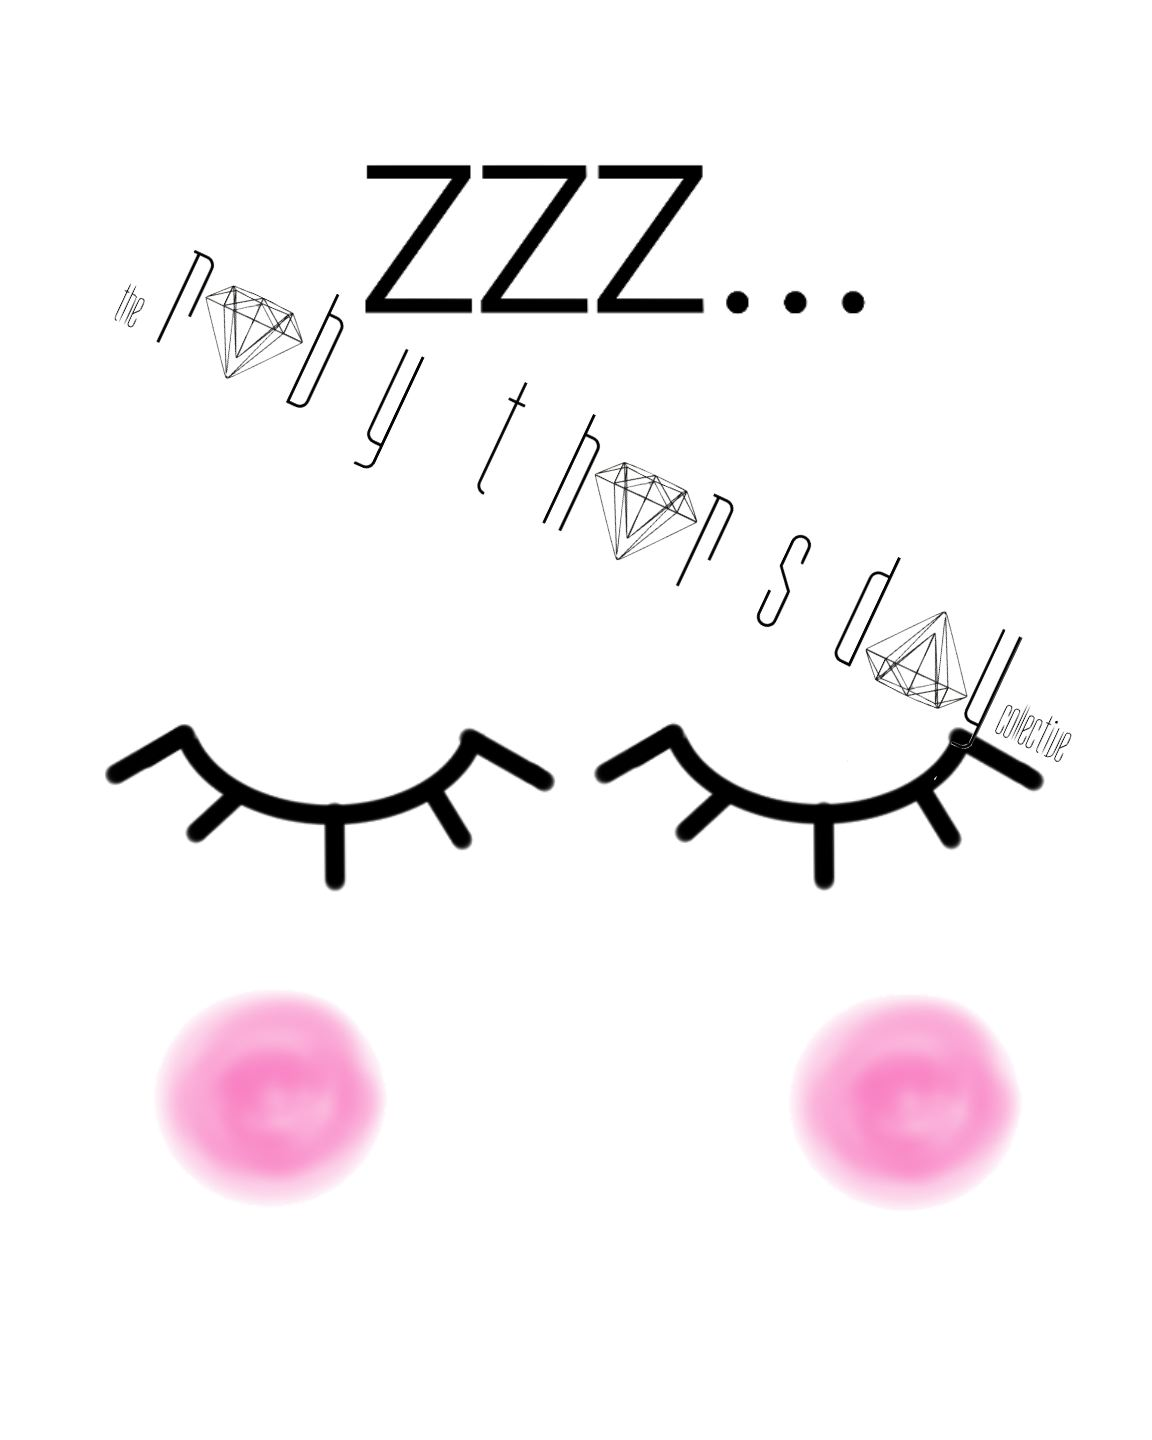 sleep watermark.jpg